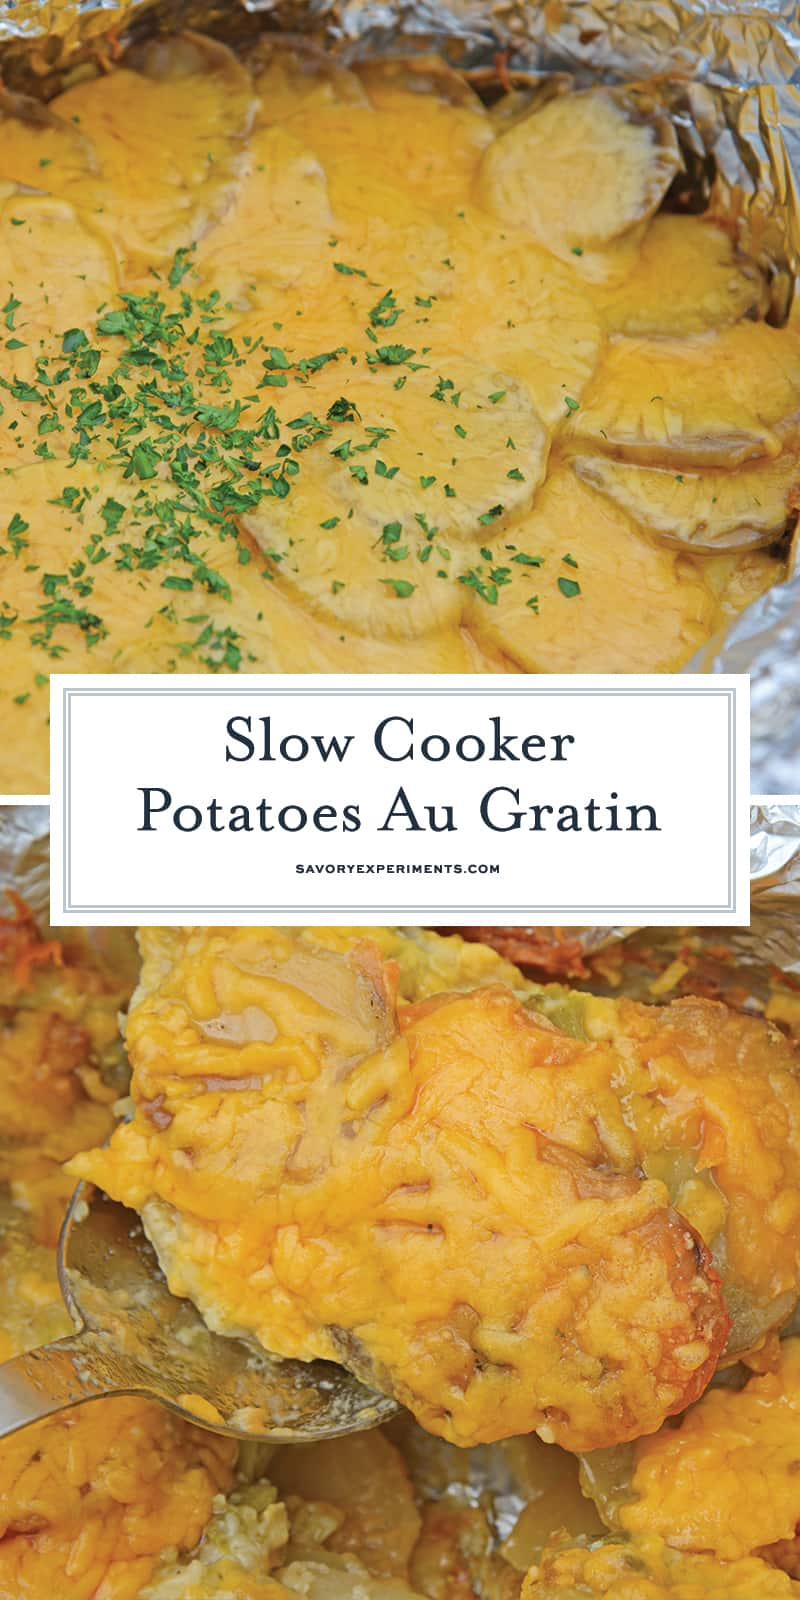 Slow Cooker Potatoes au Gratin are an amazing copycat recipe of Fleming's Steakhouse's potatoes.  Pop it in your slow cooker and reap the cheesy benefits. #slowcookerpotatoesaugratin #potatoesaugratin www.savoryexperiments.com